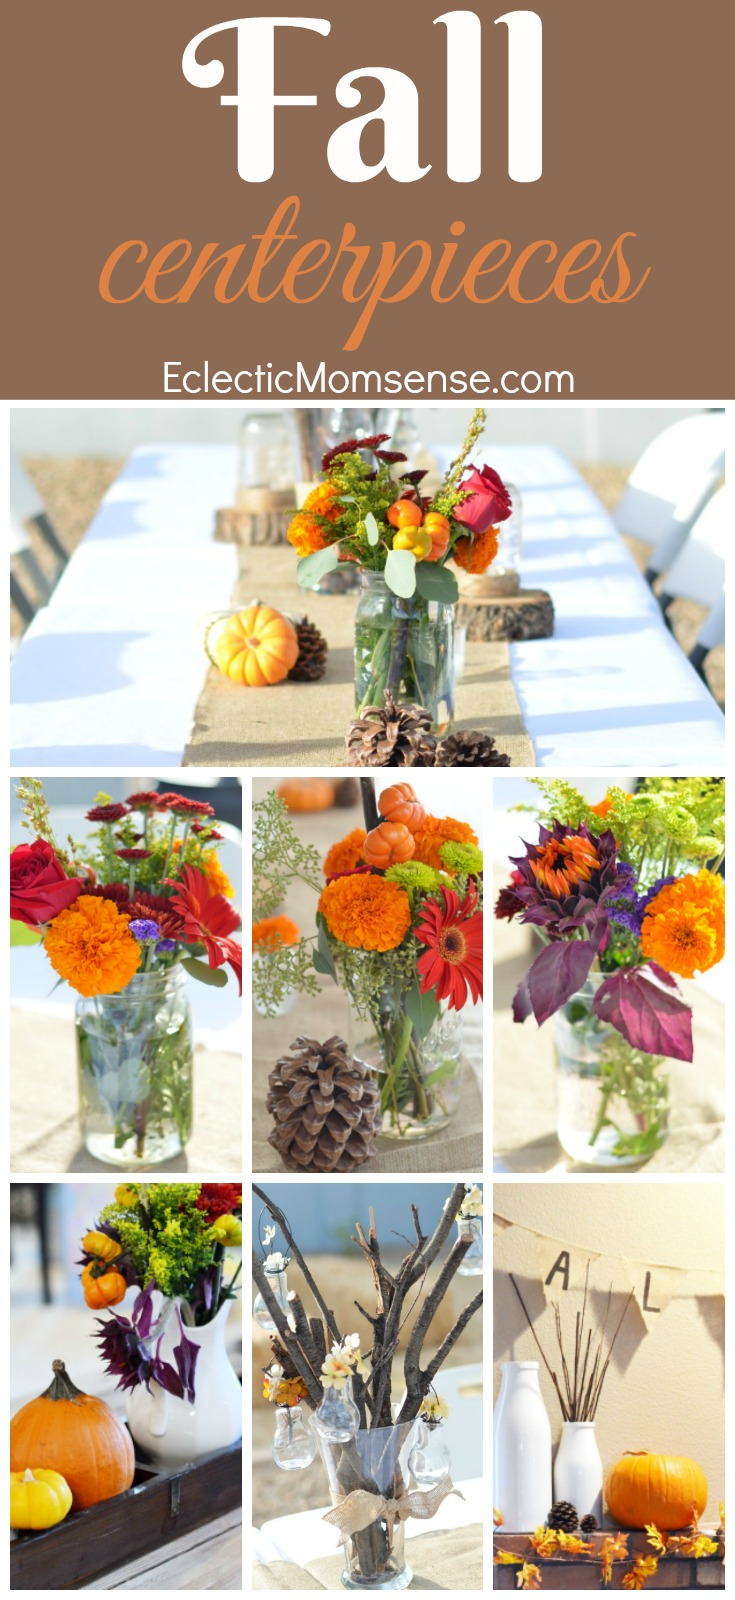 Simple Fall Arrangements | Elegant arrangement ideas with a helping of rustic charm.